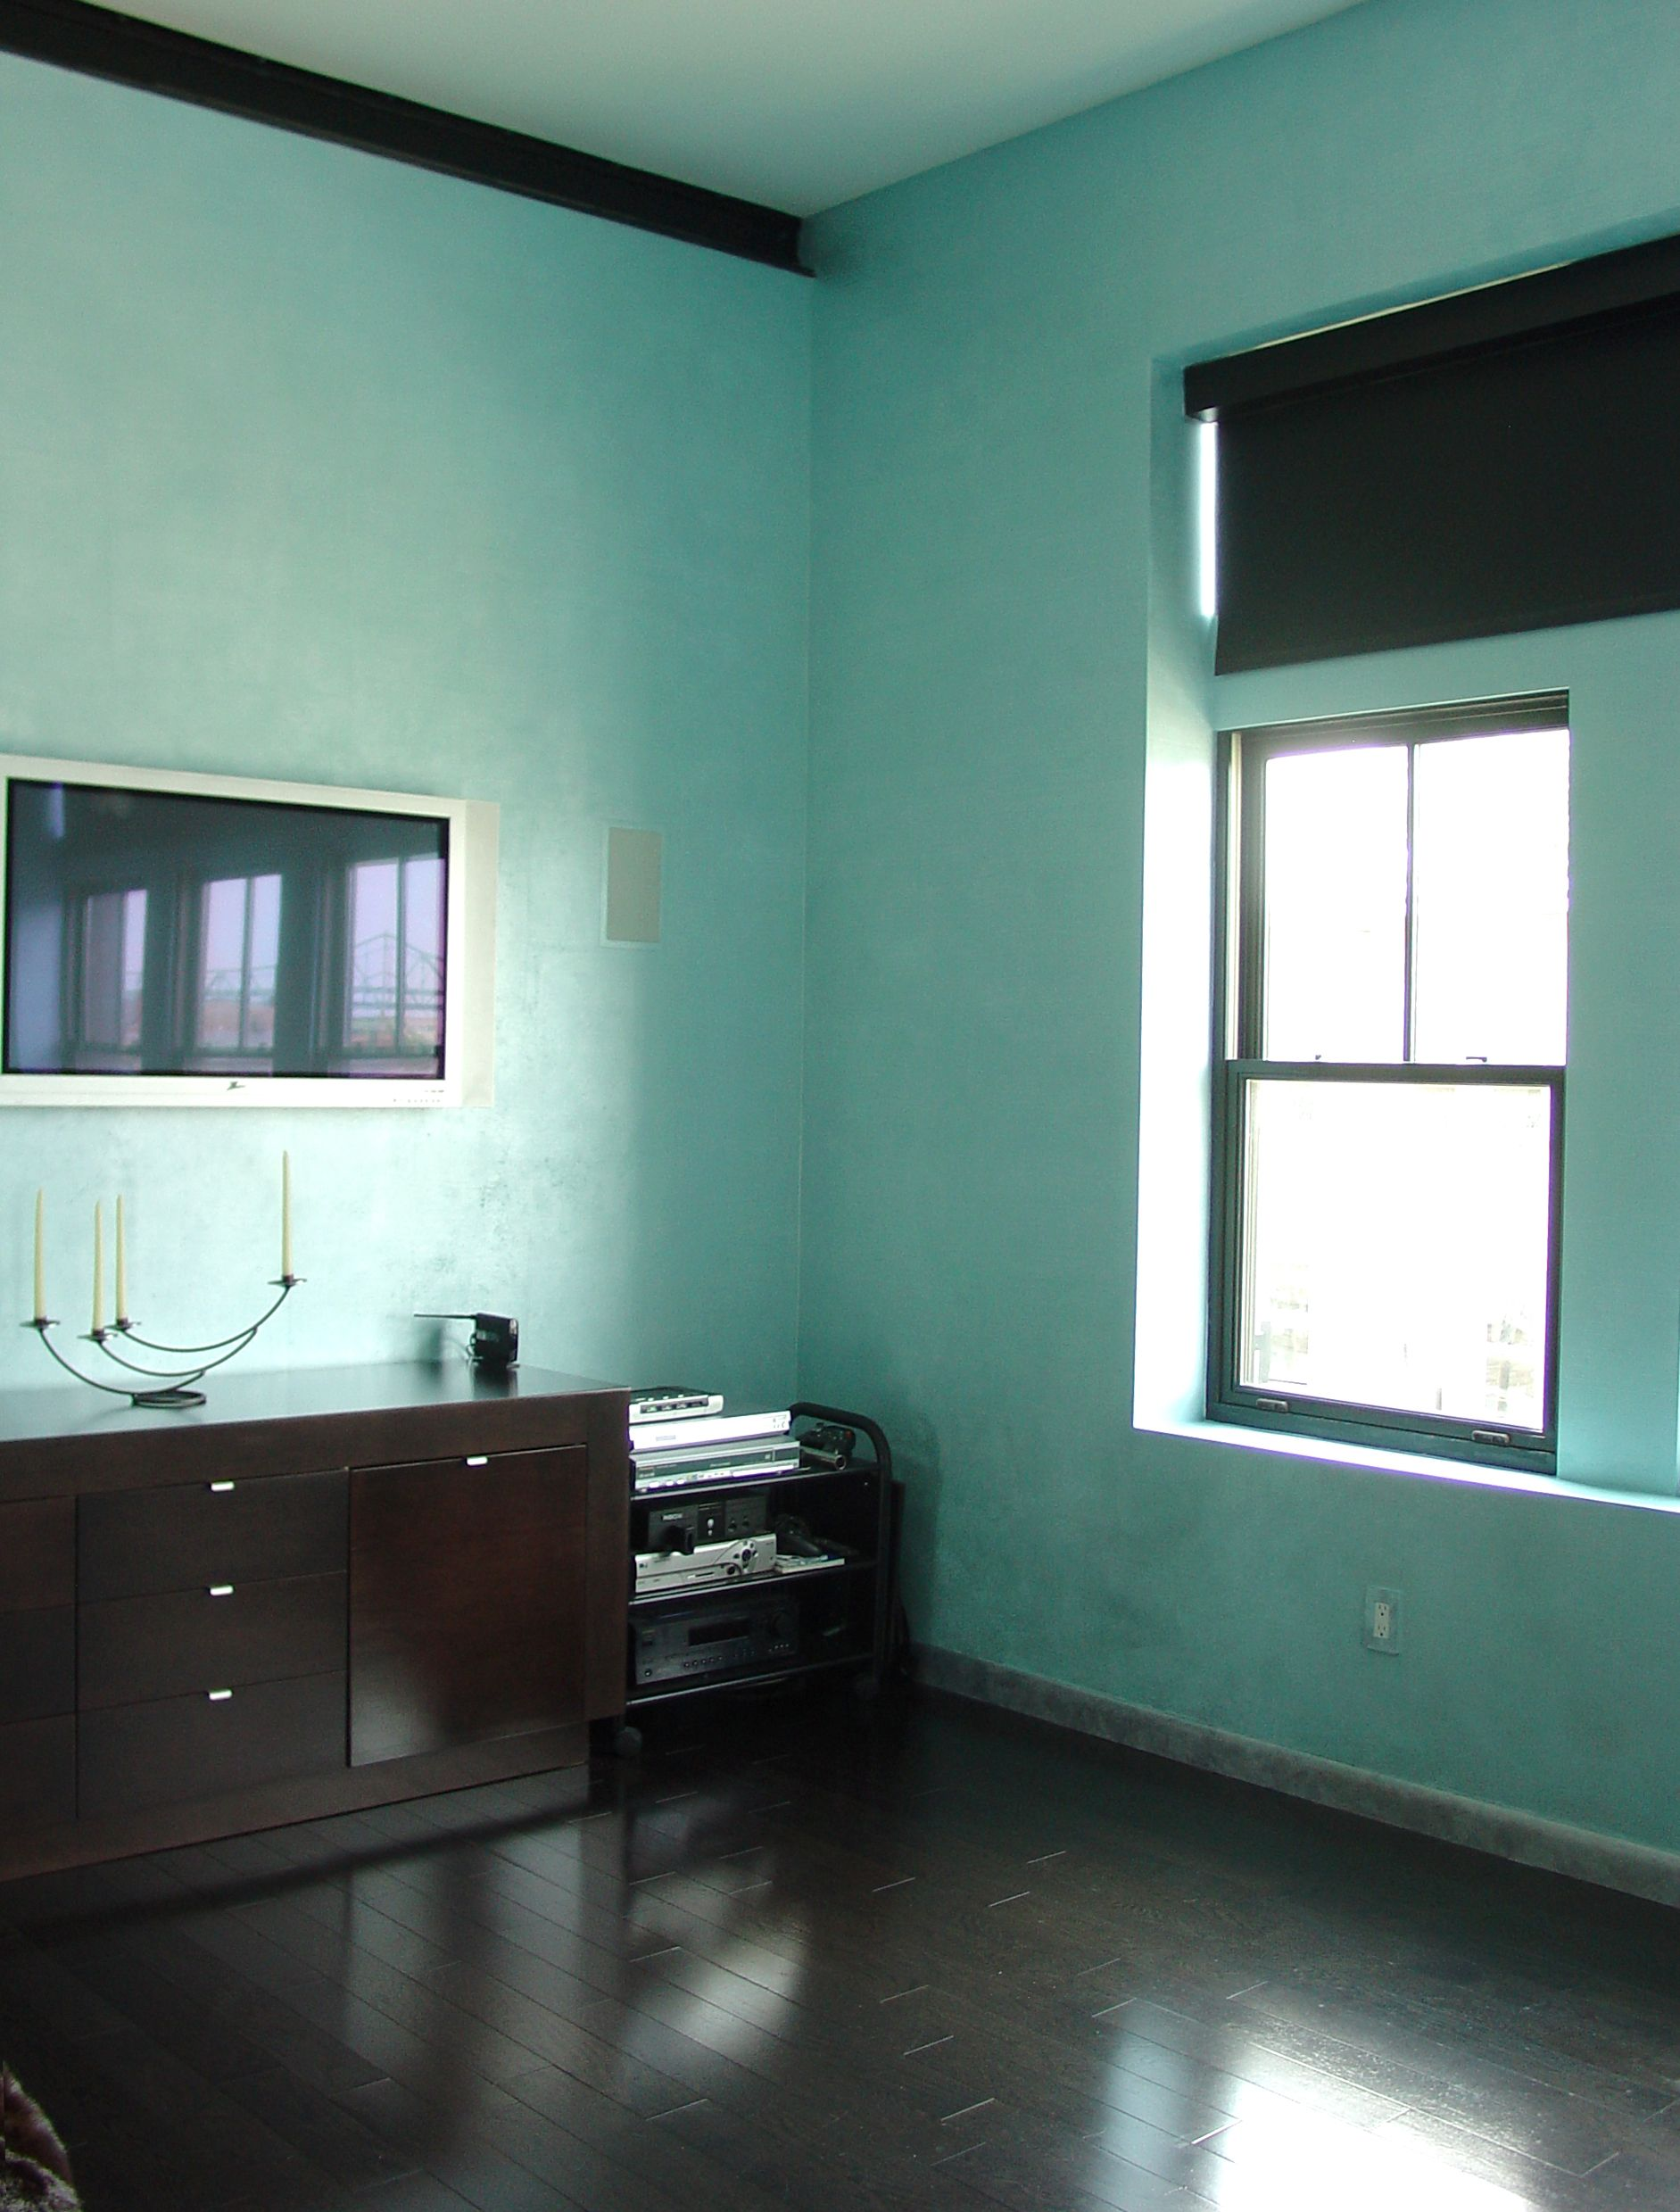 Finished Interior Designs In Kerala: Pearlescent Paint For Interior Walls